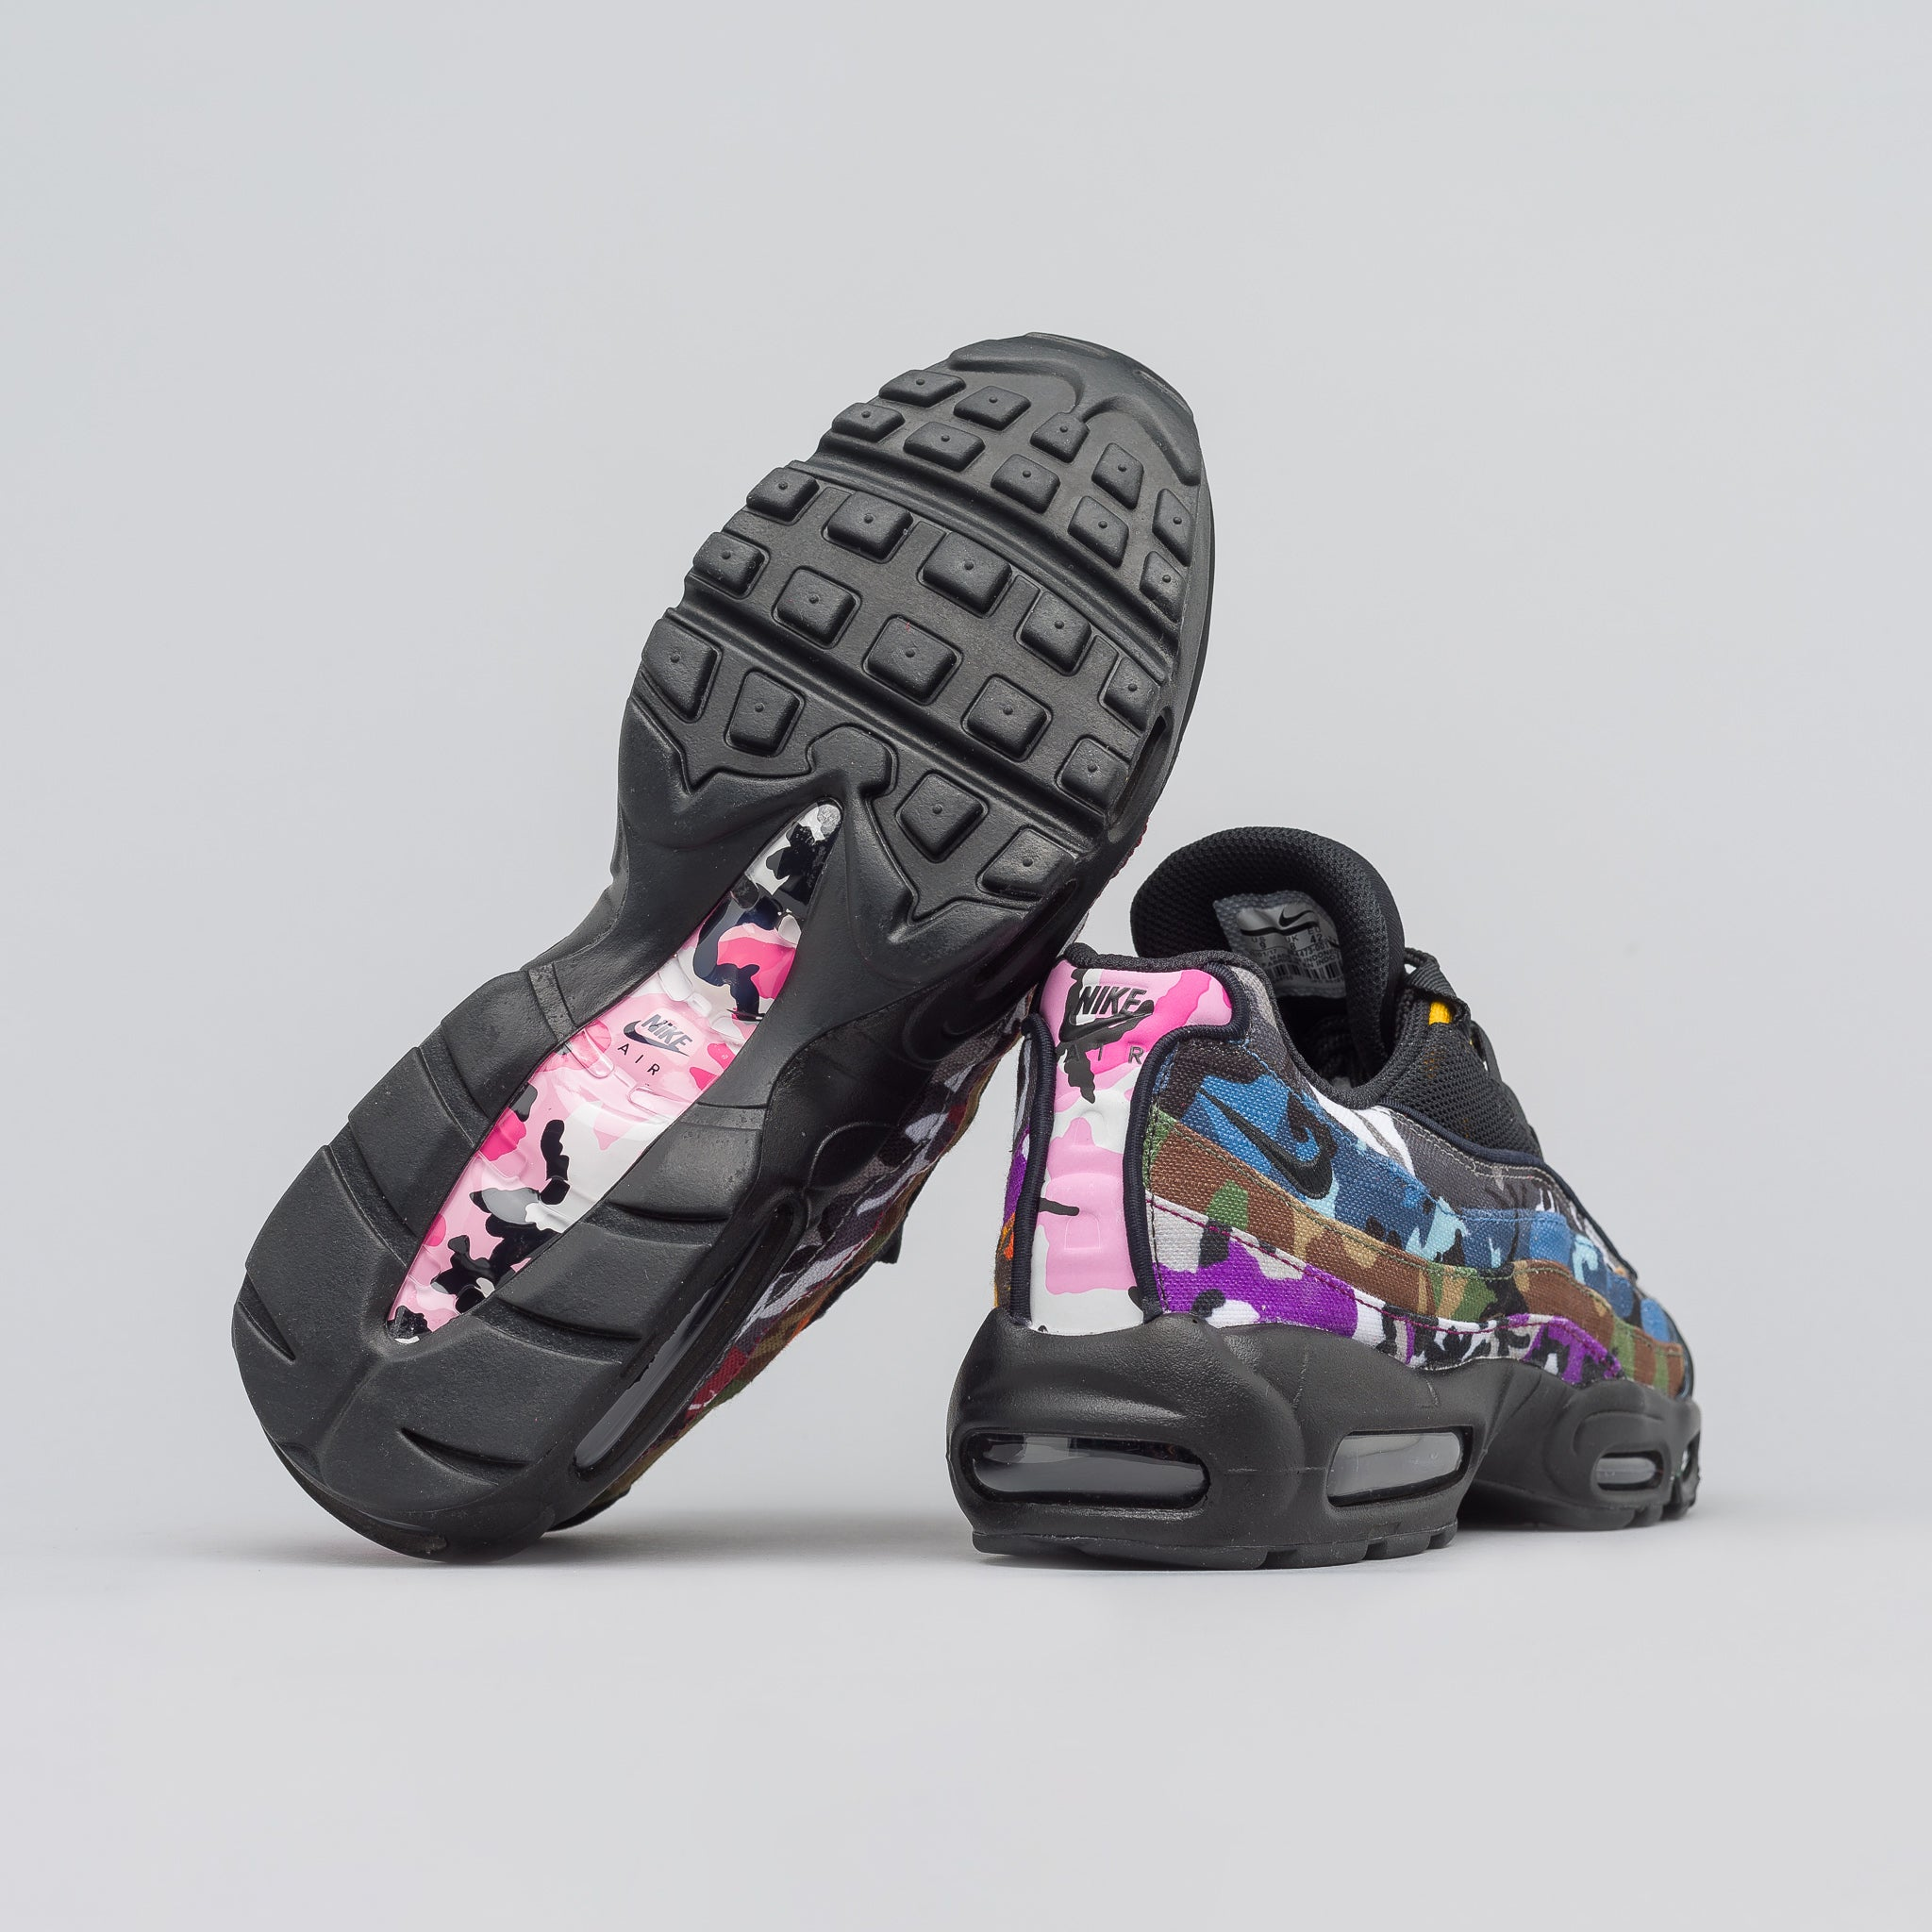 Nike Air Max 95 ERDL Party in Black Camo  97e23856a